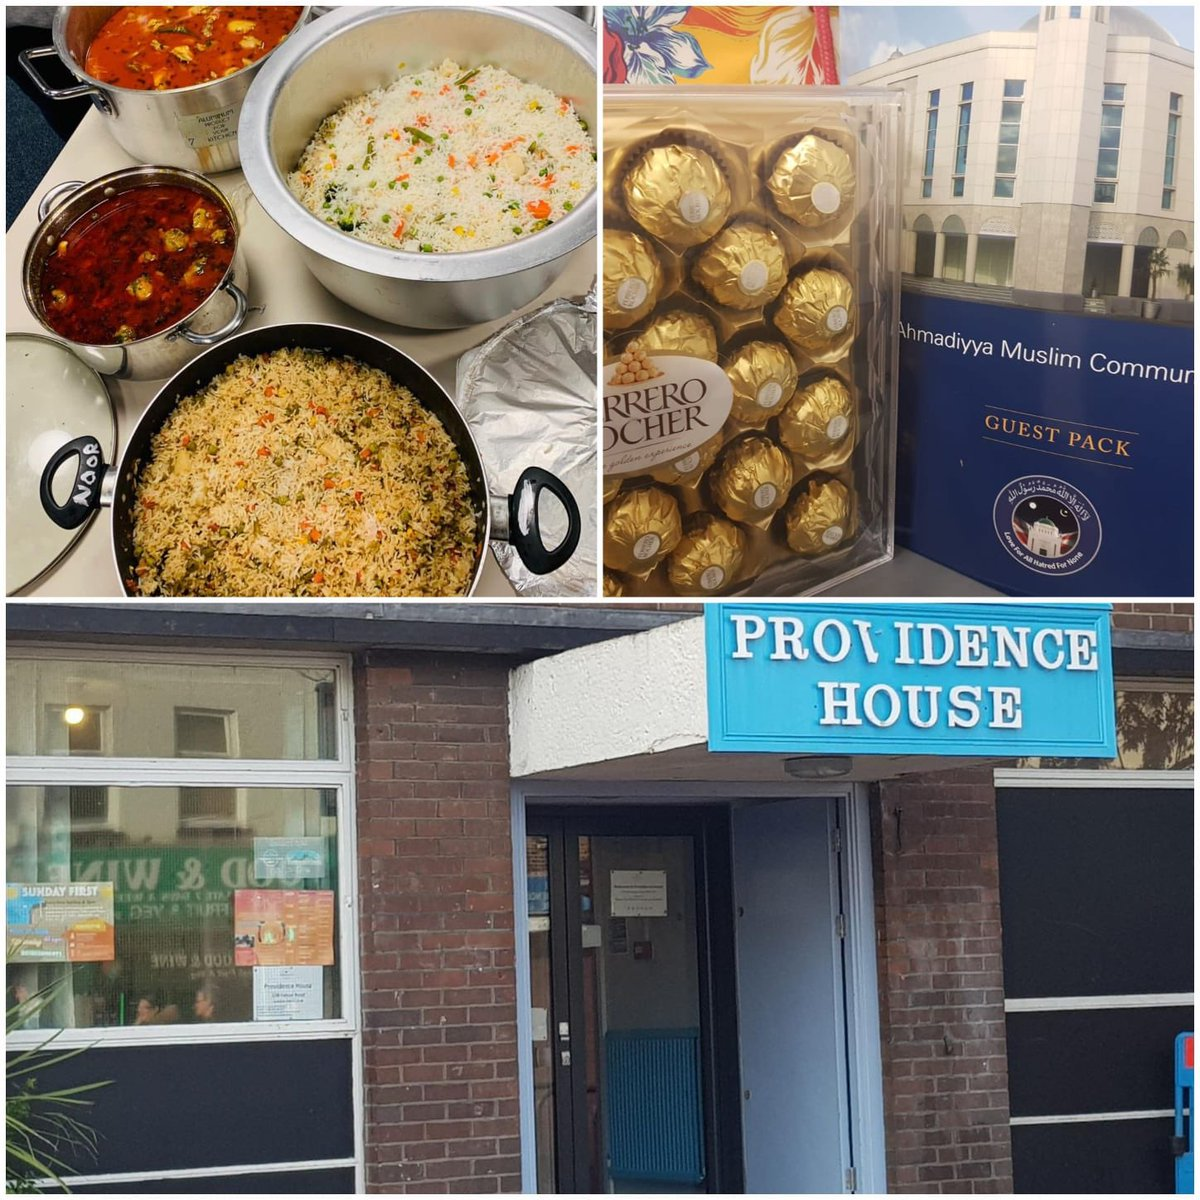 Lajna #ClaphamJunction went to the local #ProvidenceHouse to give food for homeless people. A act of kindness. A support to community.